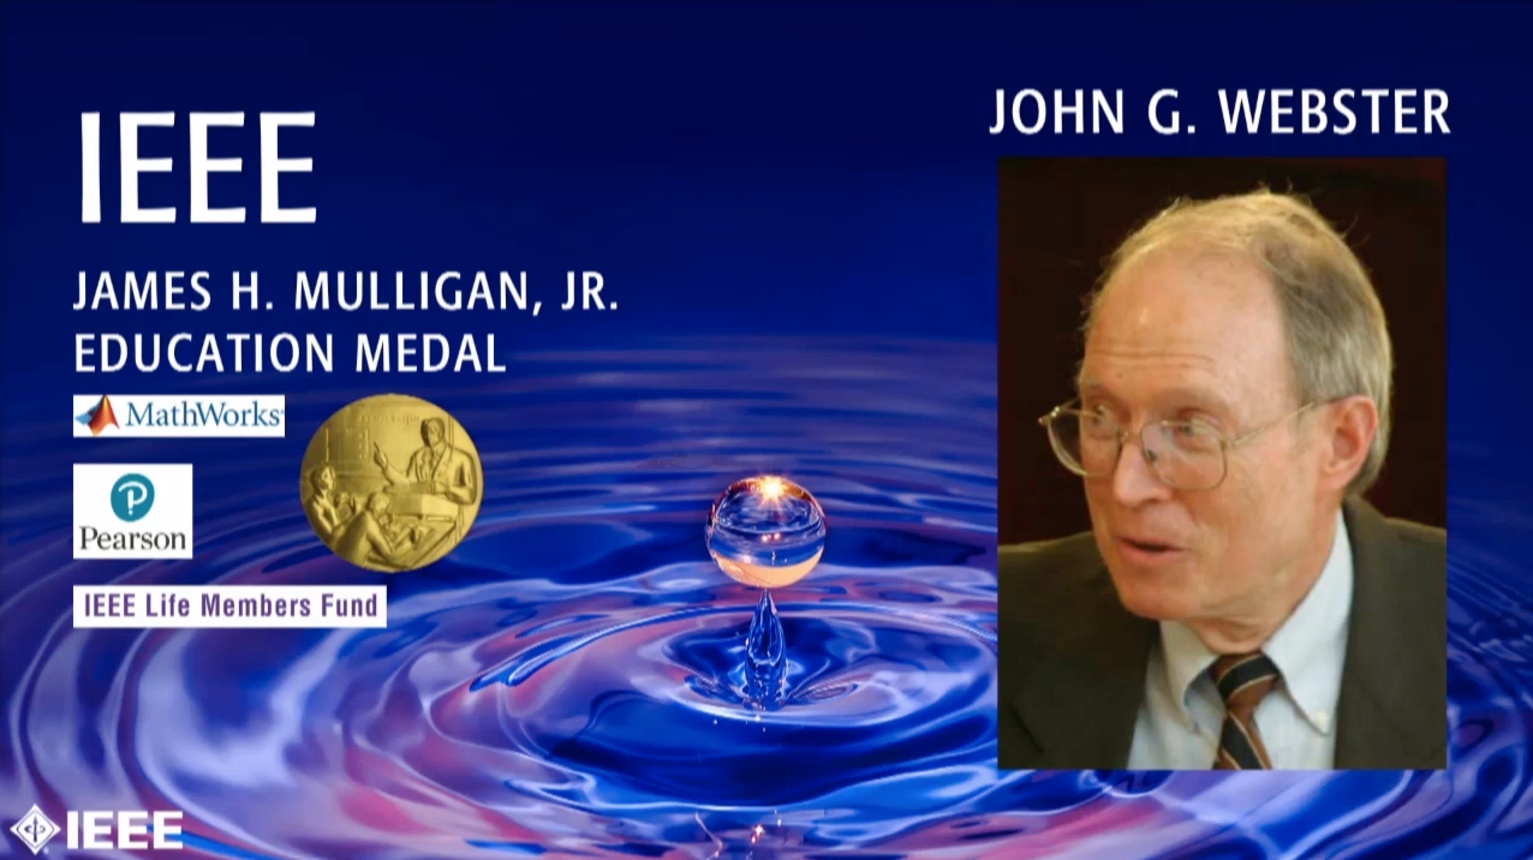 John G. Webster - IEEE James H. Mulligan, Jr. Education Medal, 2019 IEEE Honors Ceremony